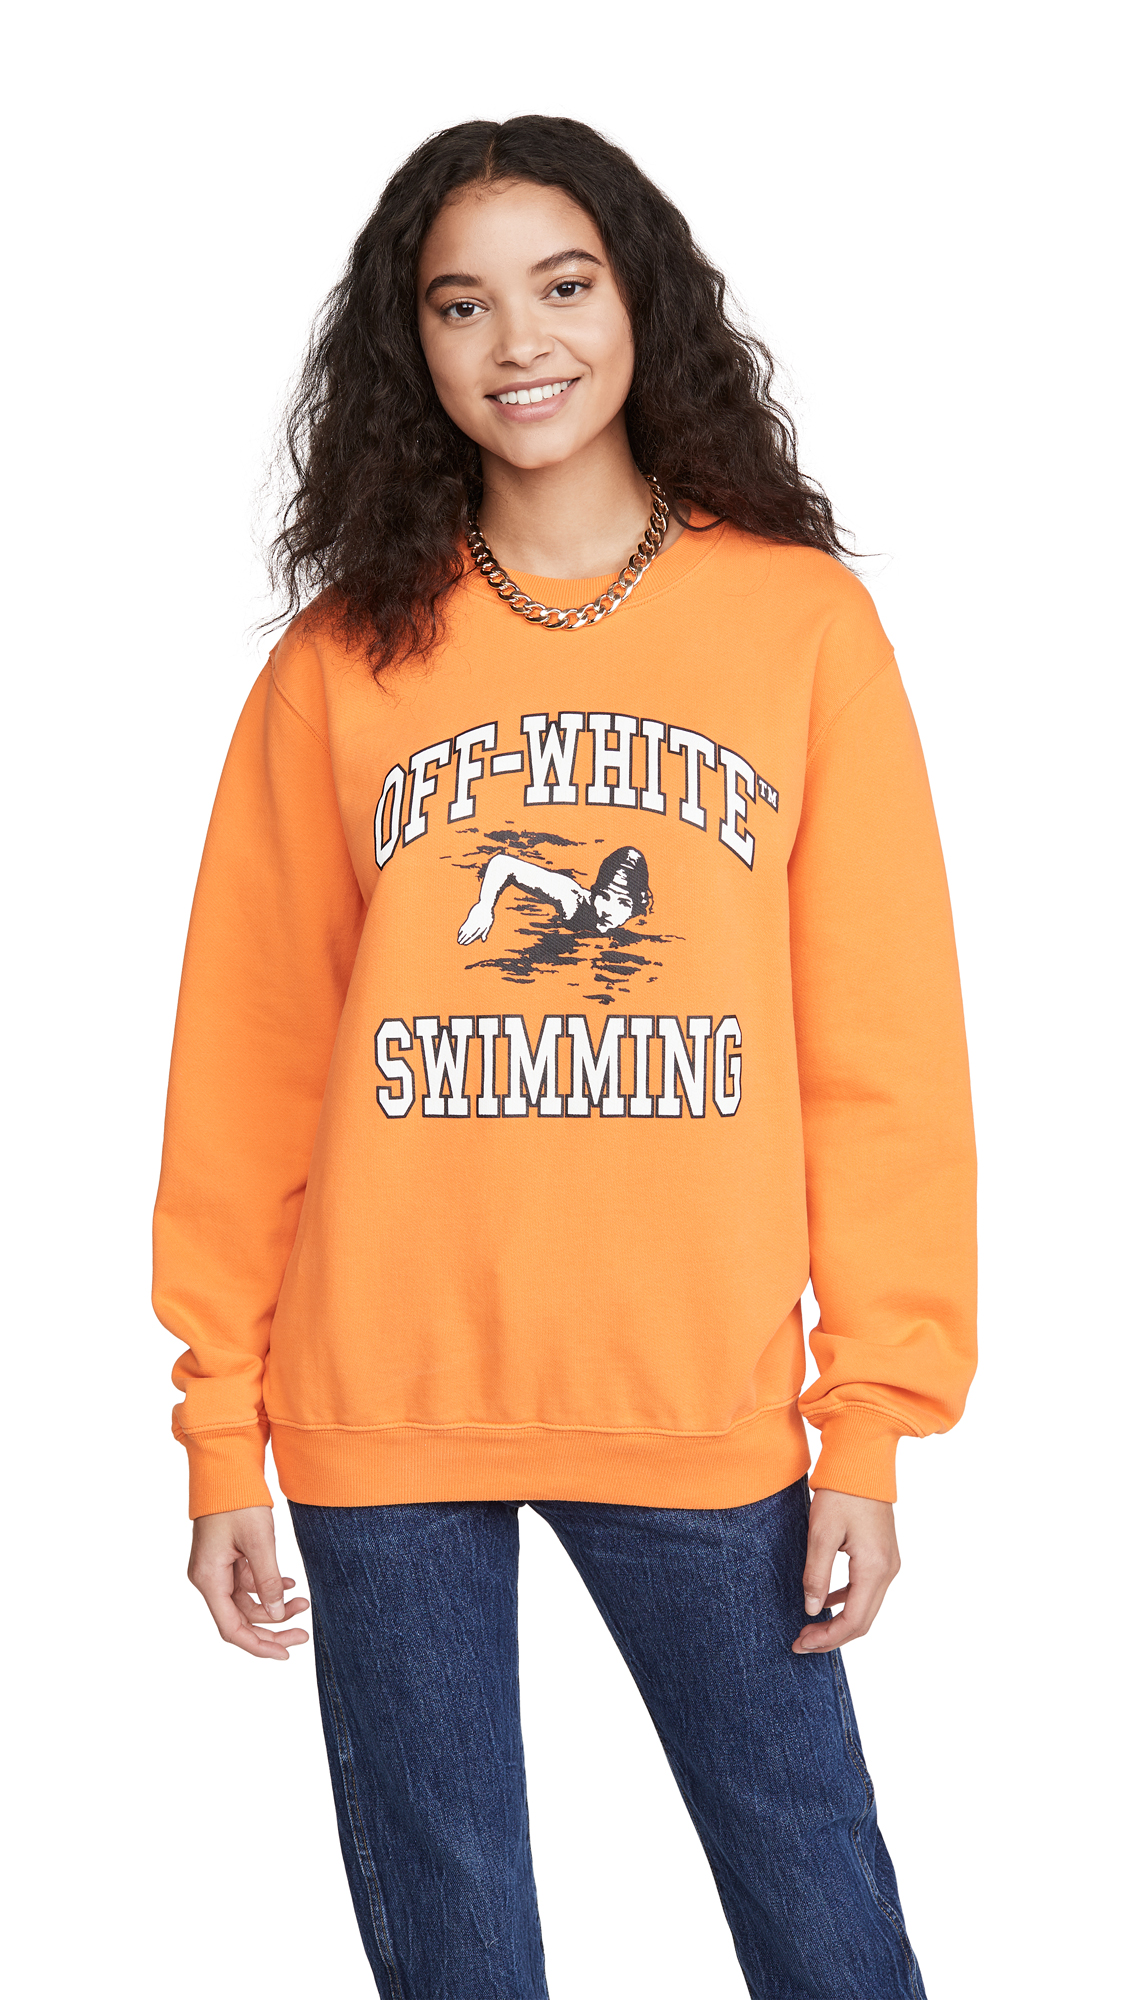 Off-White Off-White Swimming Crew Neck Sweatshirt - 40% Off Sale